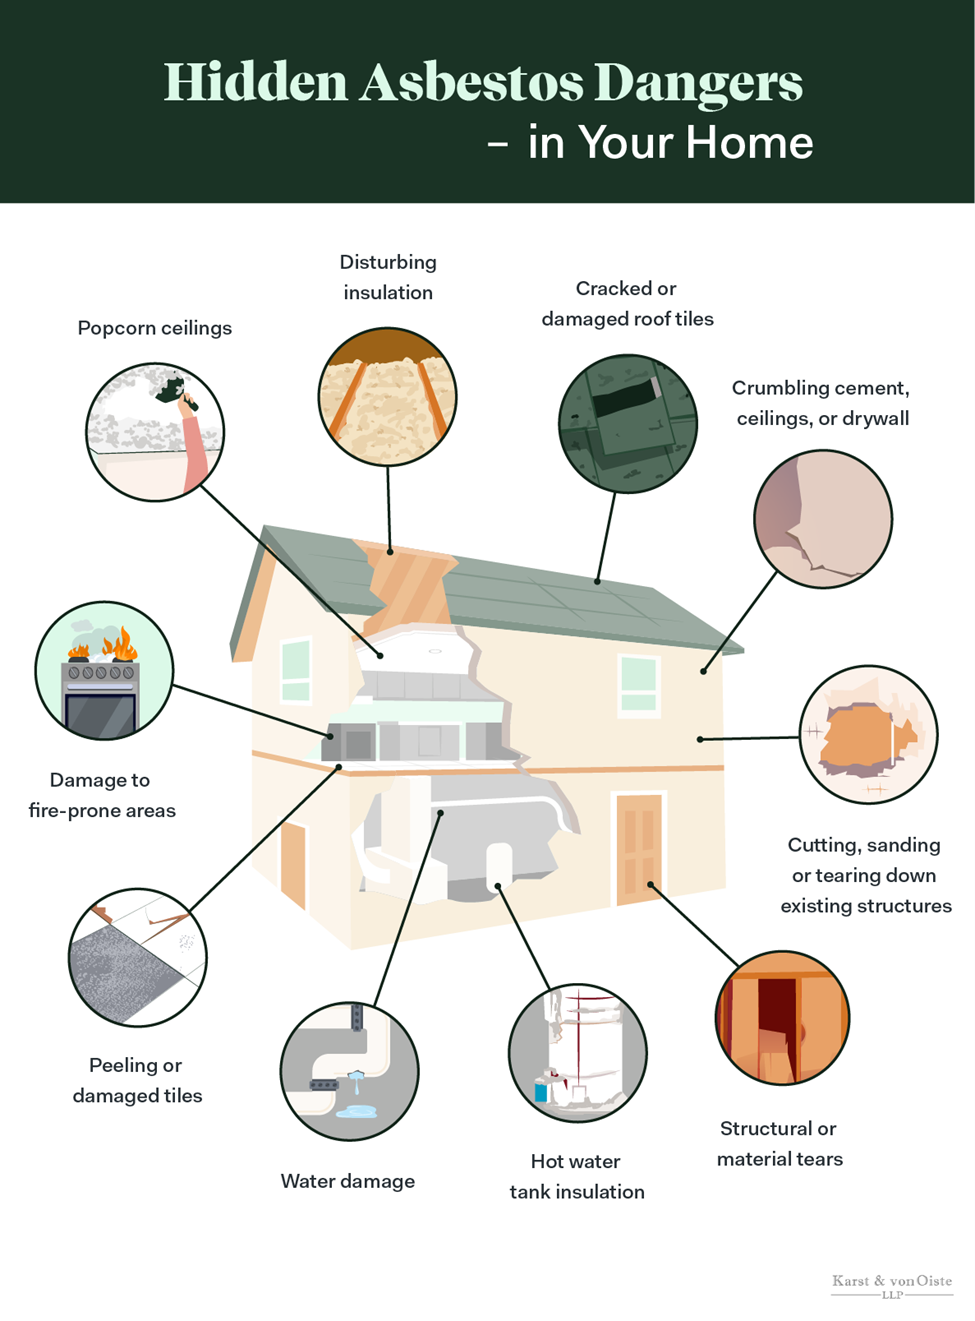 Diagram showcasing in home hidden asbestos dangers.